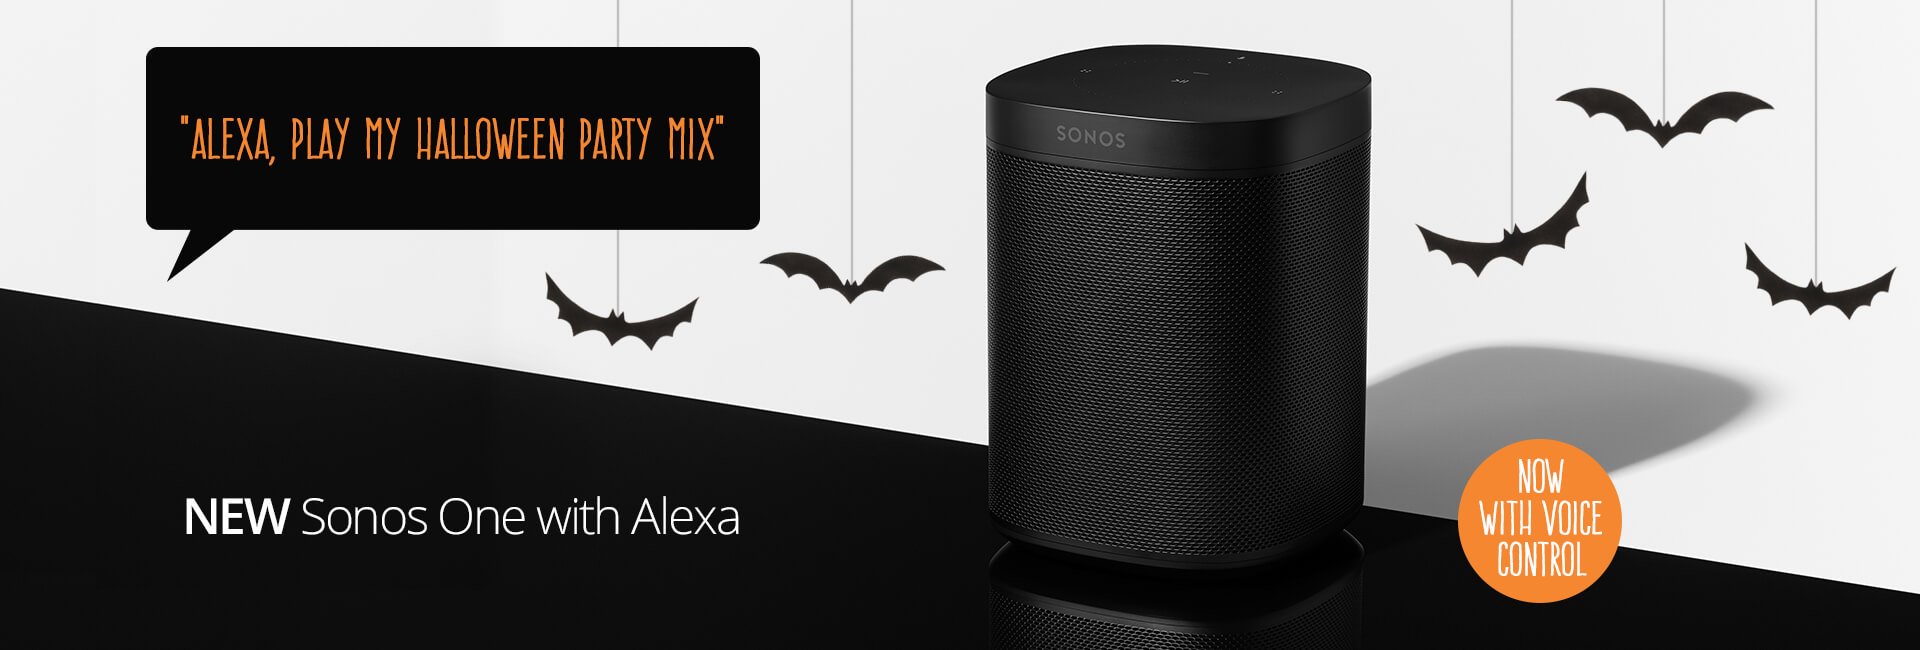 New Sonos One with Alexa